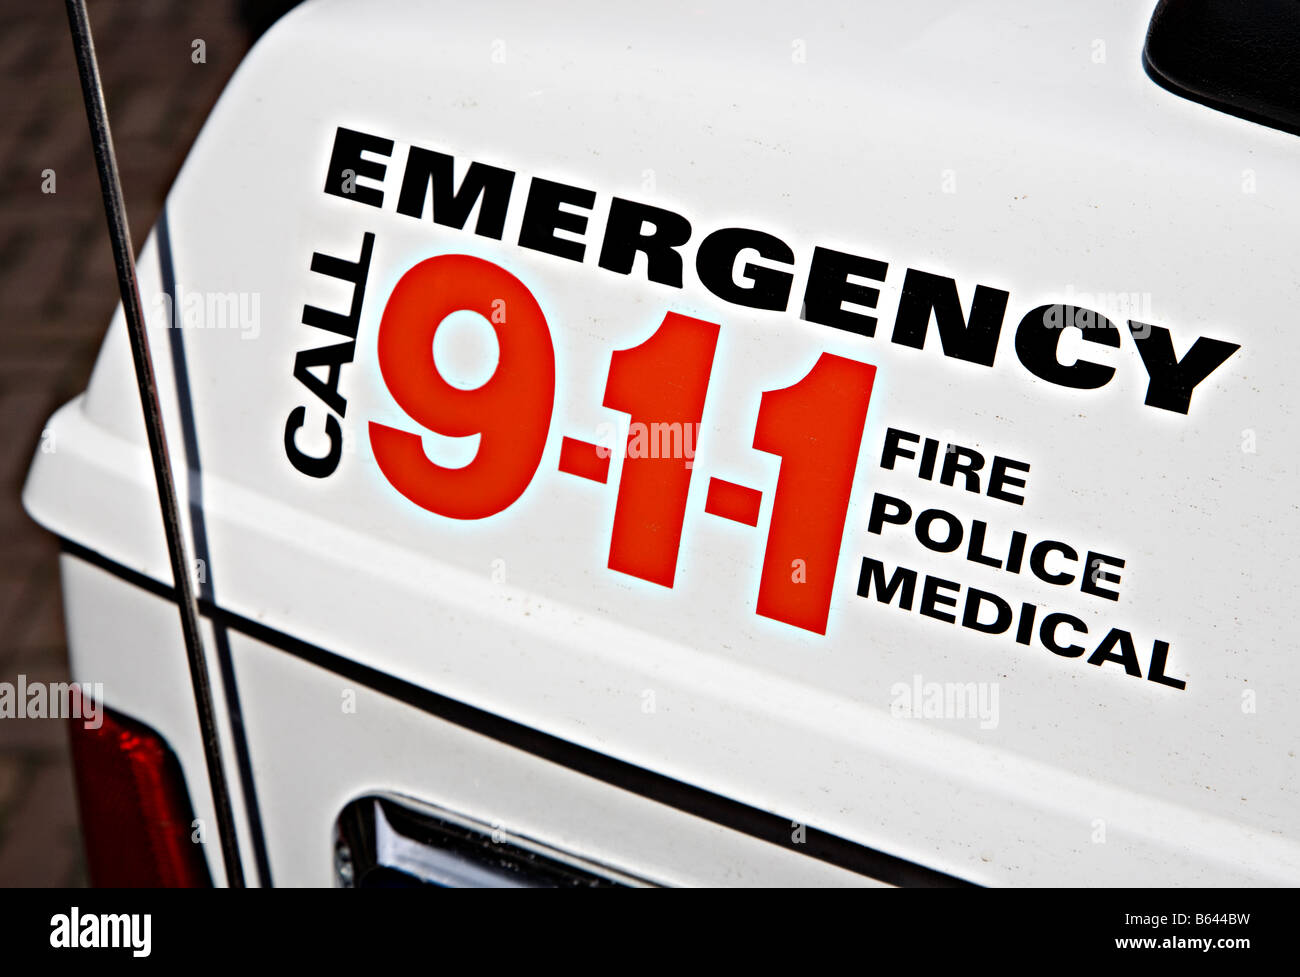 Emergency Telephone Usa Stock Photos Amp Emergency Telephone